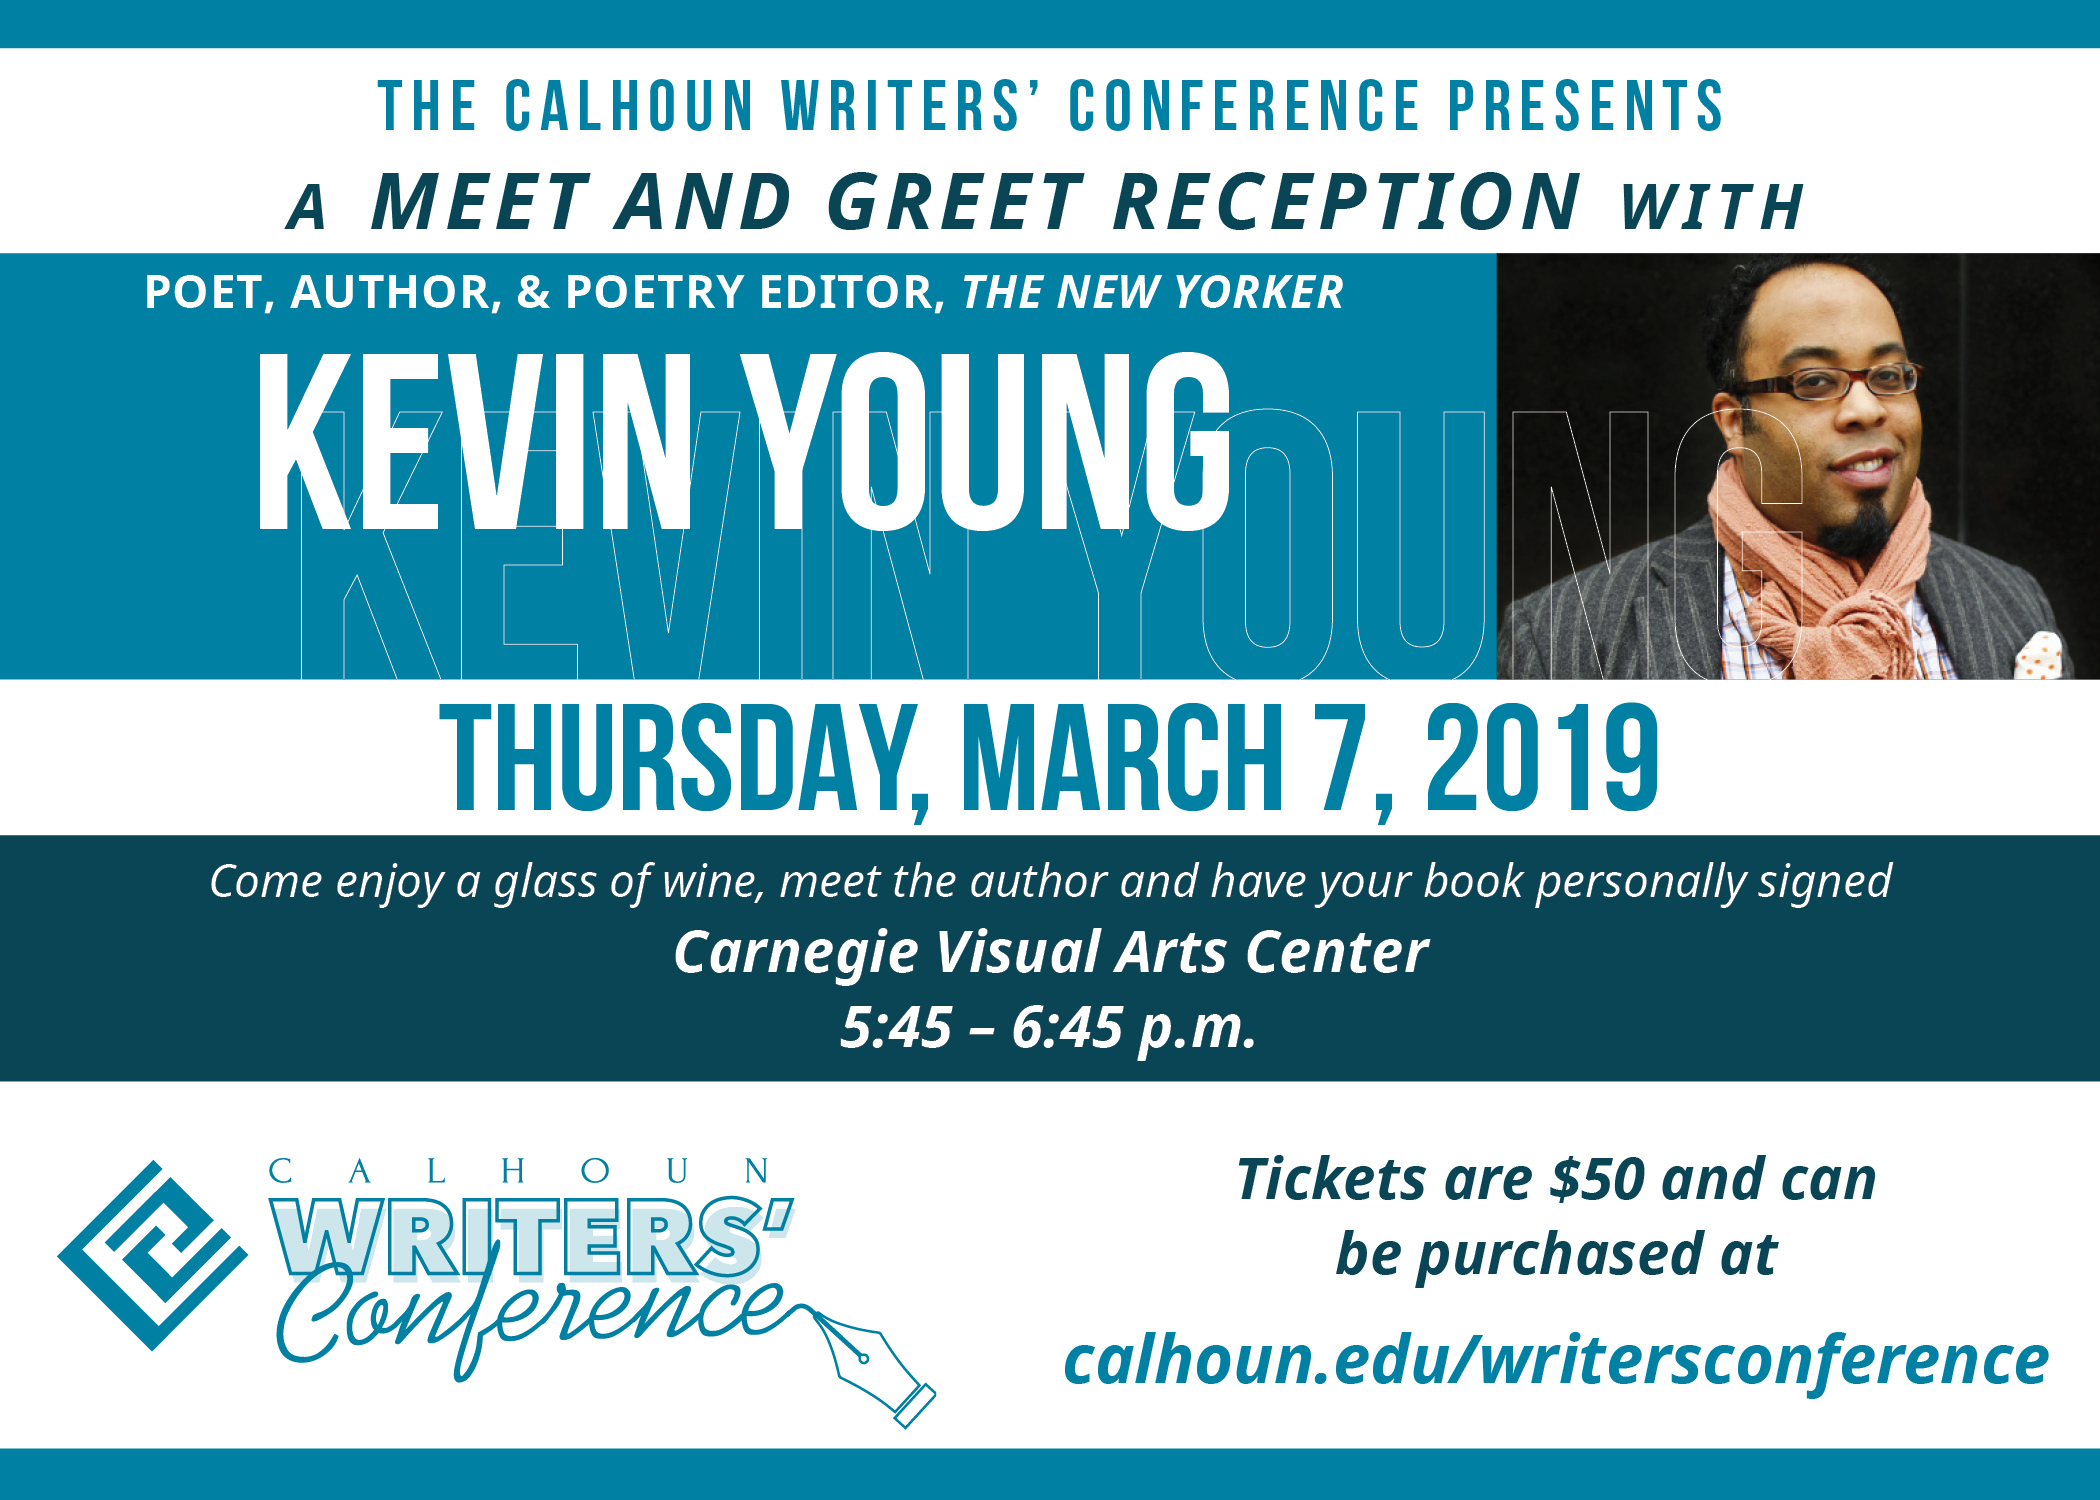 Before gathering to hear the author speak at 7:00 p.m., you are invited to a delightful ticketed Meet and Greet at the stunning Carnegie Visual Arts Center in Decatur, AL.  Come enjoy a glass of wine, meet the author and have your book personally signed by Mr. Young from 5:45 – 6:45 p.m. in this extraordinary venue. A portion of the proceeds from this event will benefit the Wendy Williams Endowed Scholarship at the Calhoun College Foundation.